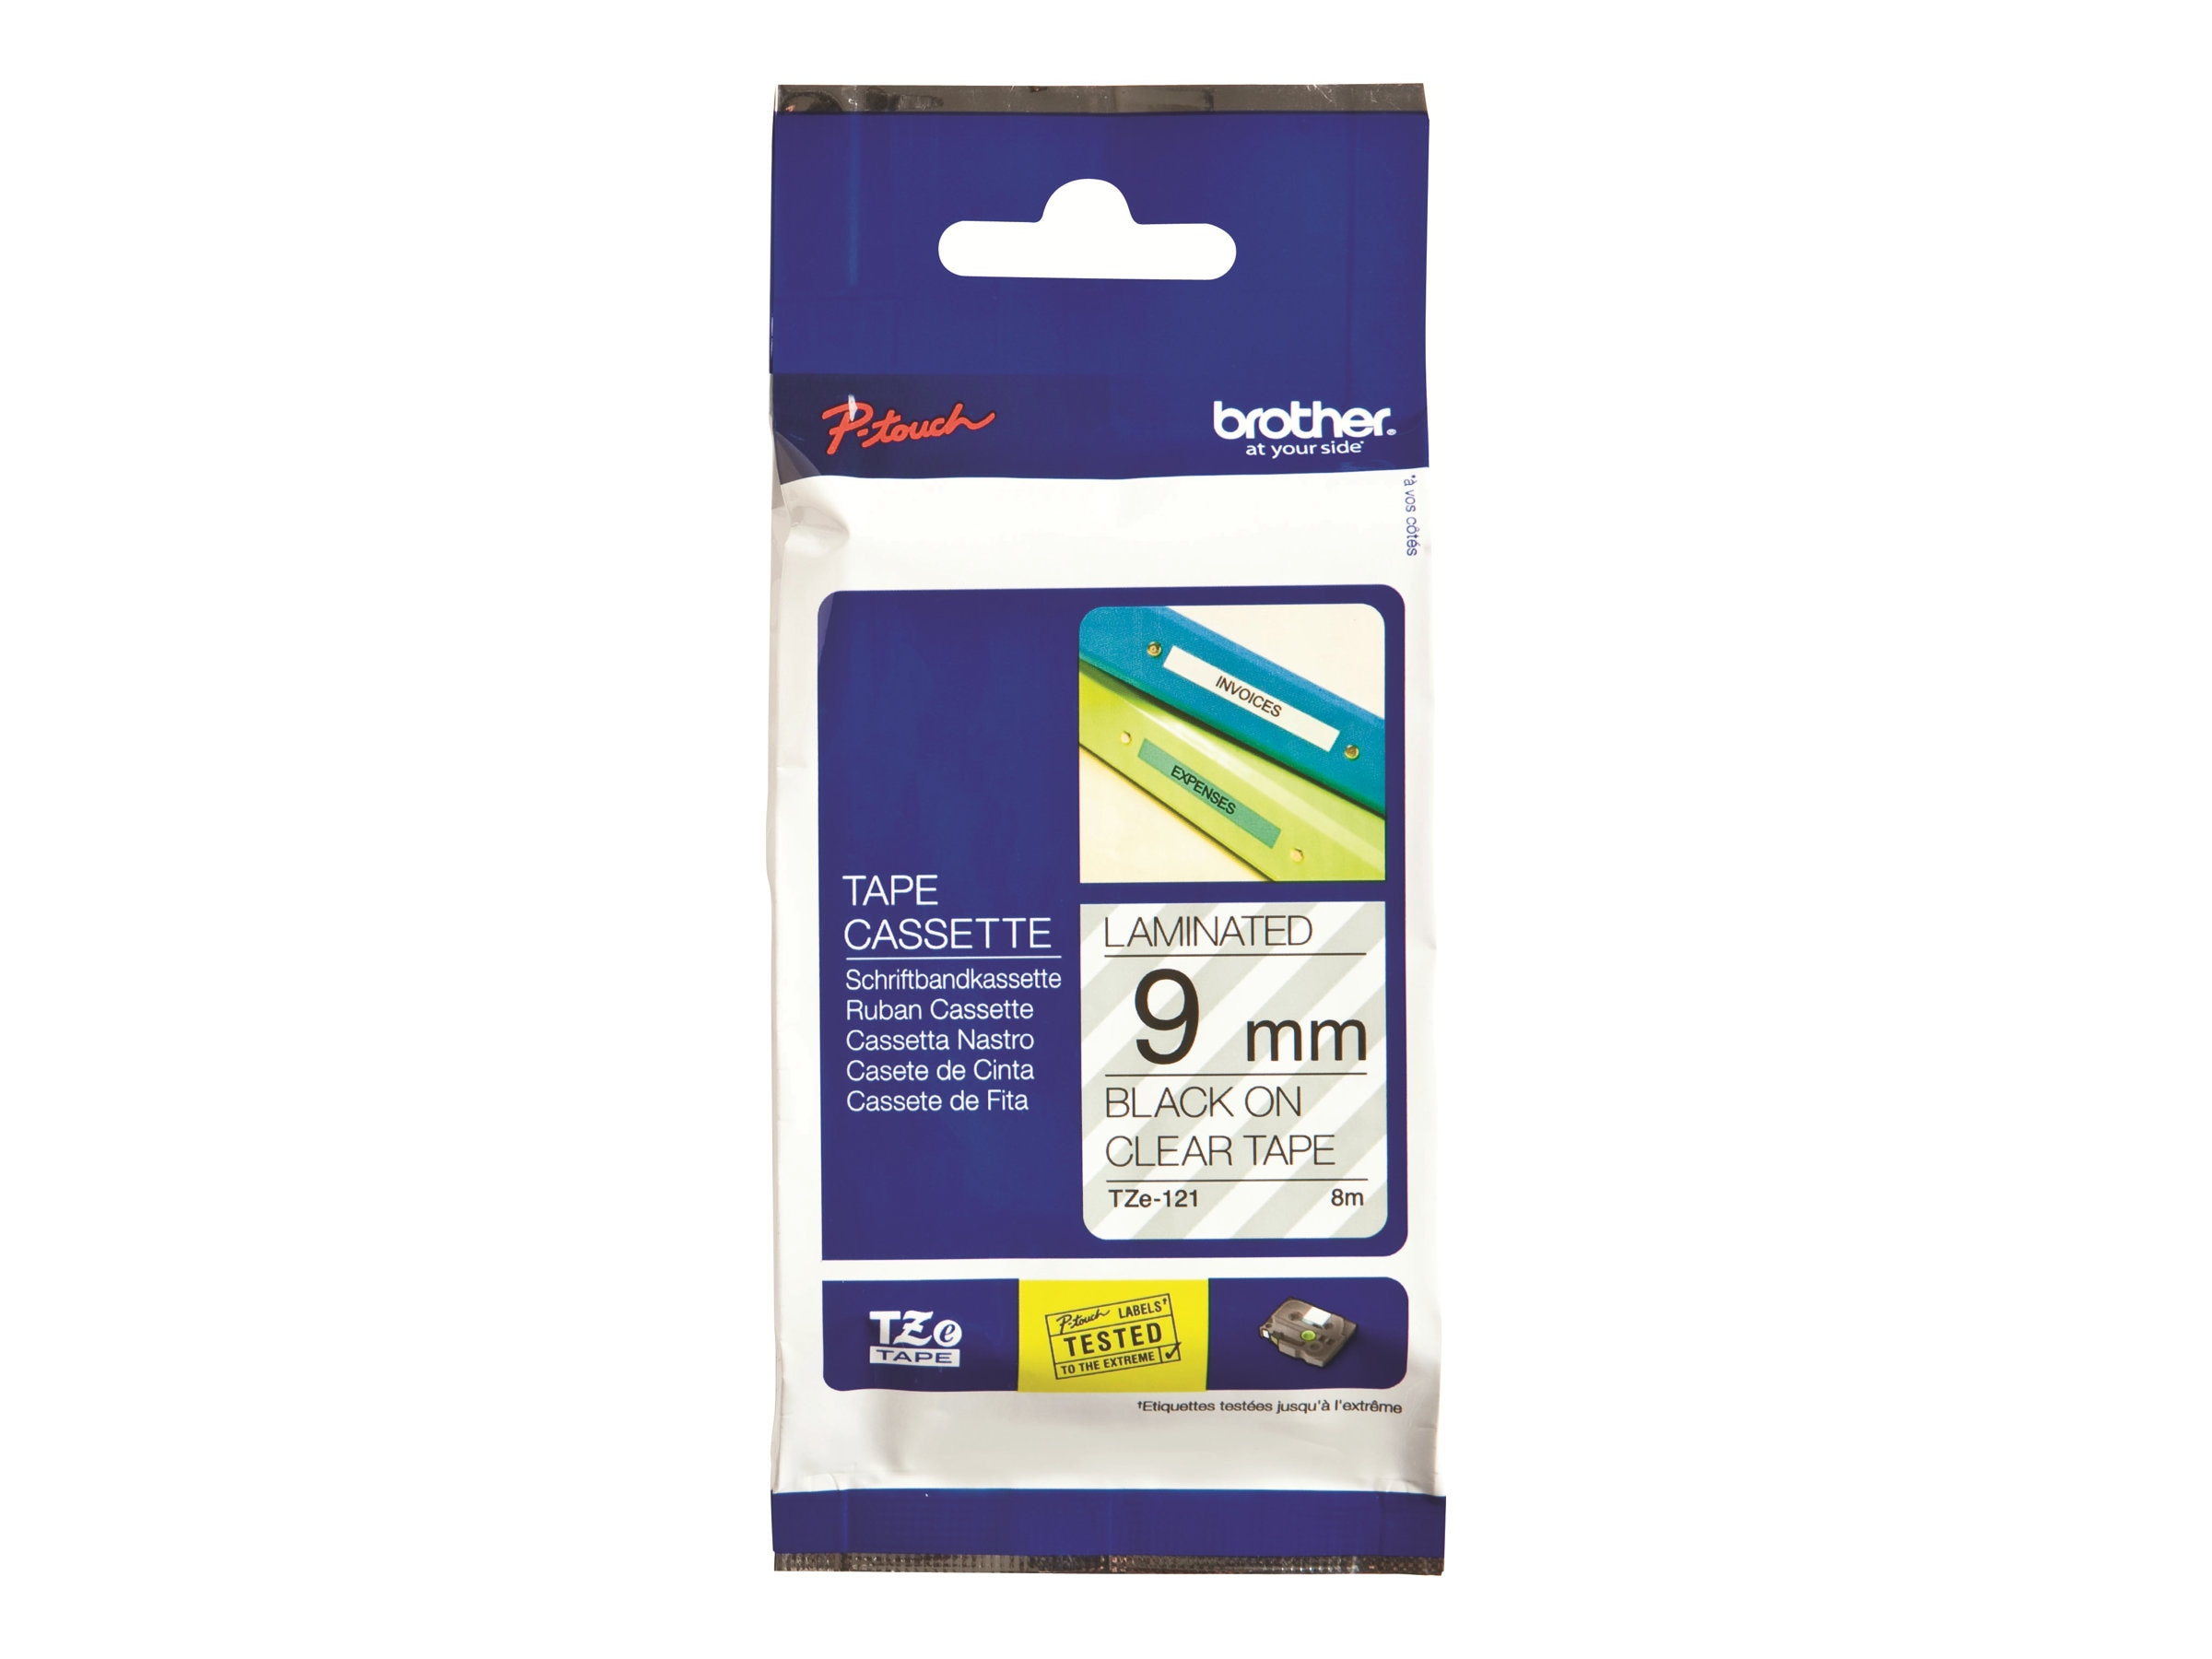 Brother 0.35 x 26.2' TZe121 Black on Clear Tape for P-Touch 8m, TZE-121